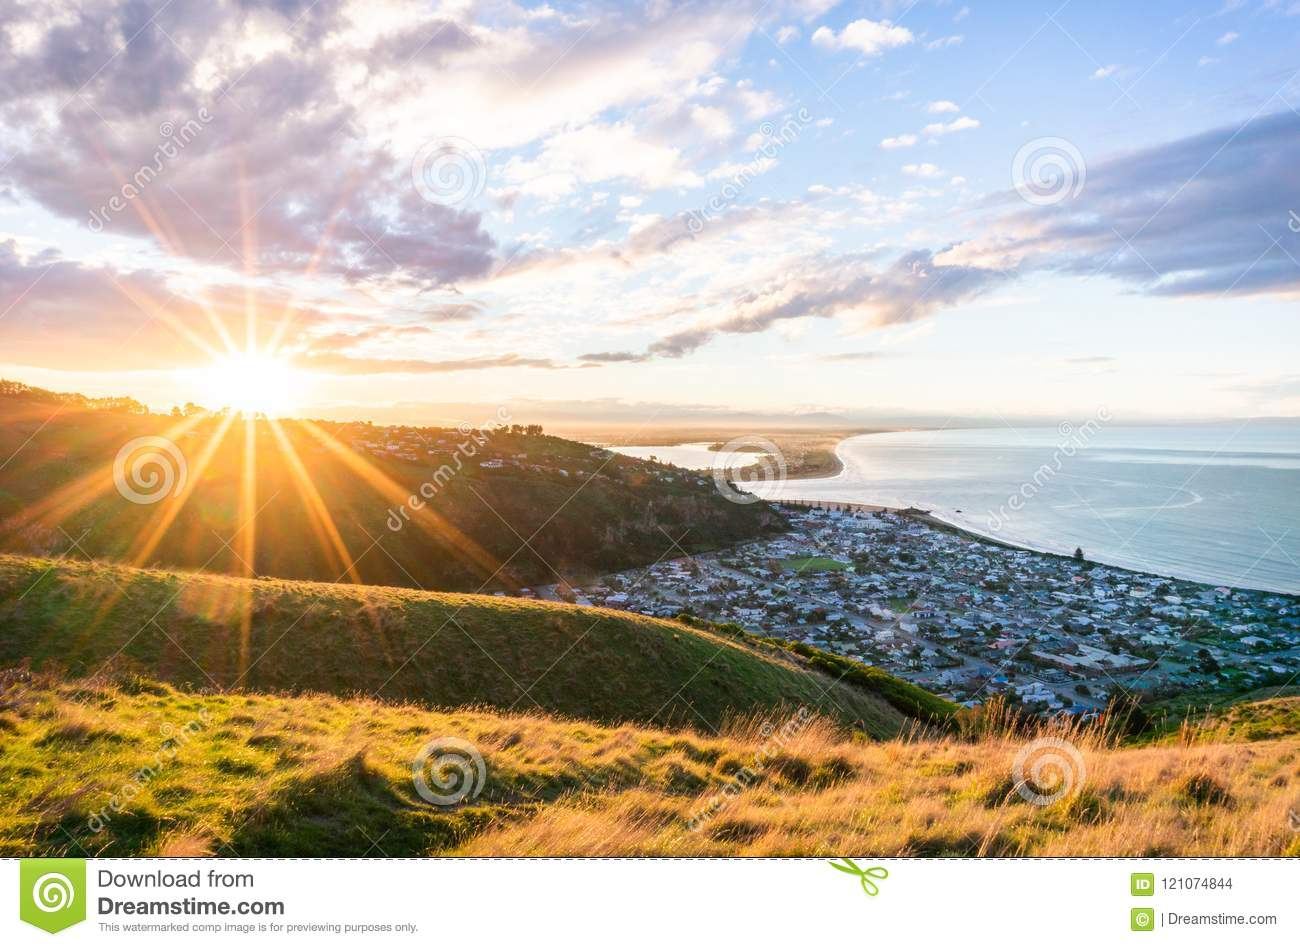 A striking sunset of a beautiful hilly seaside town